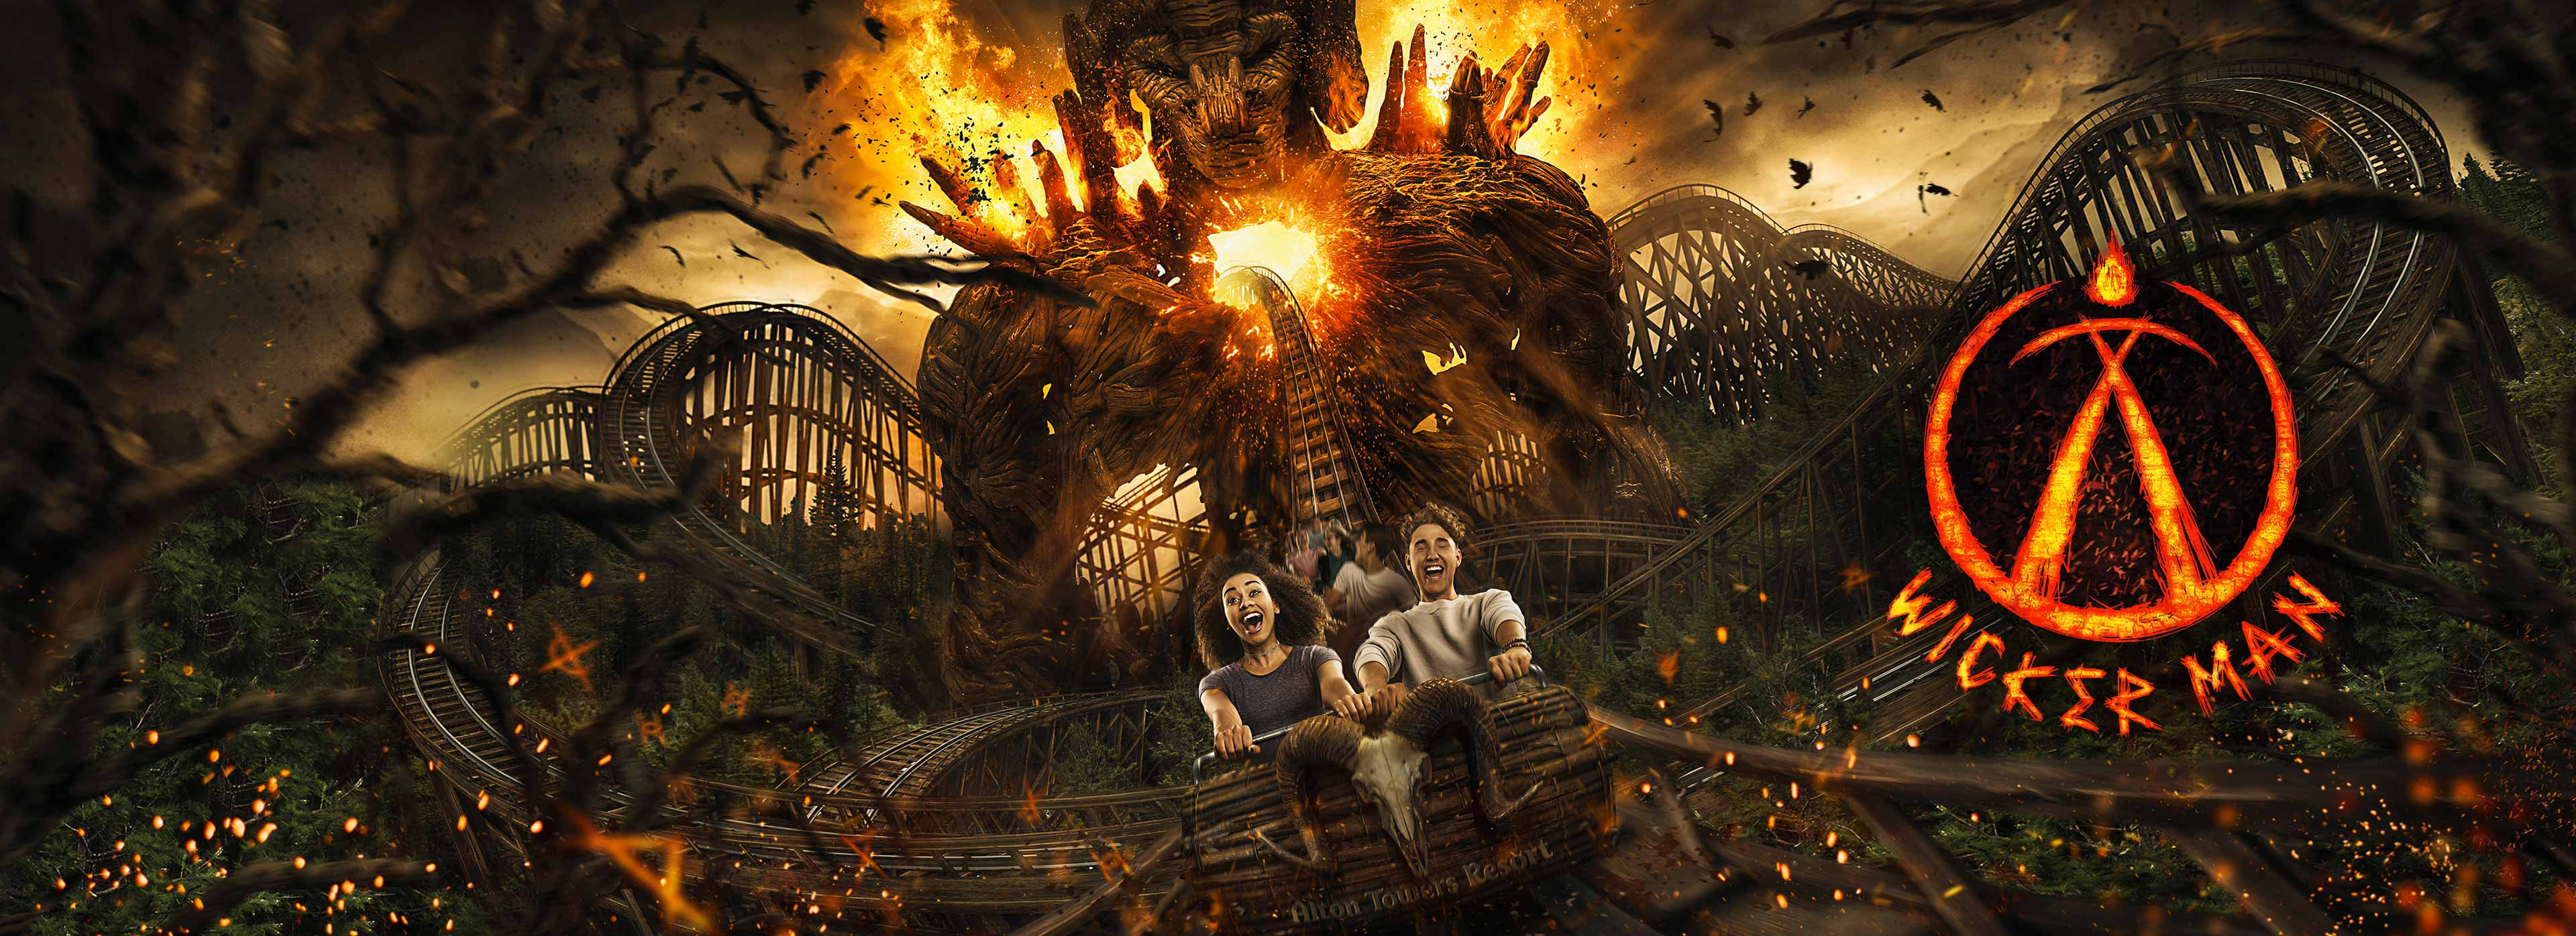 Wicker Man at Alton Towers Resort